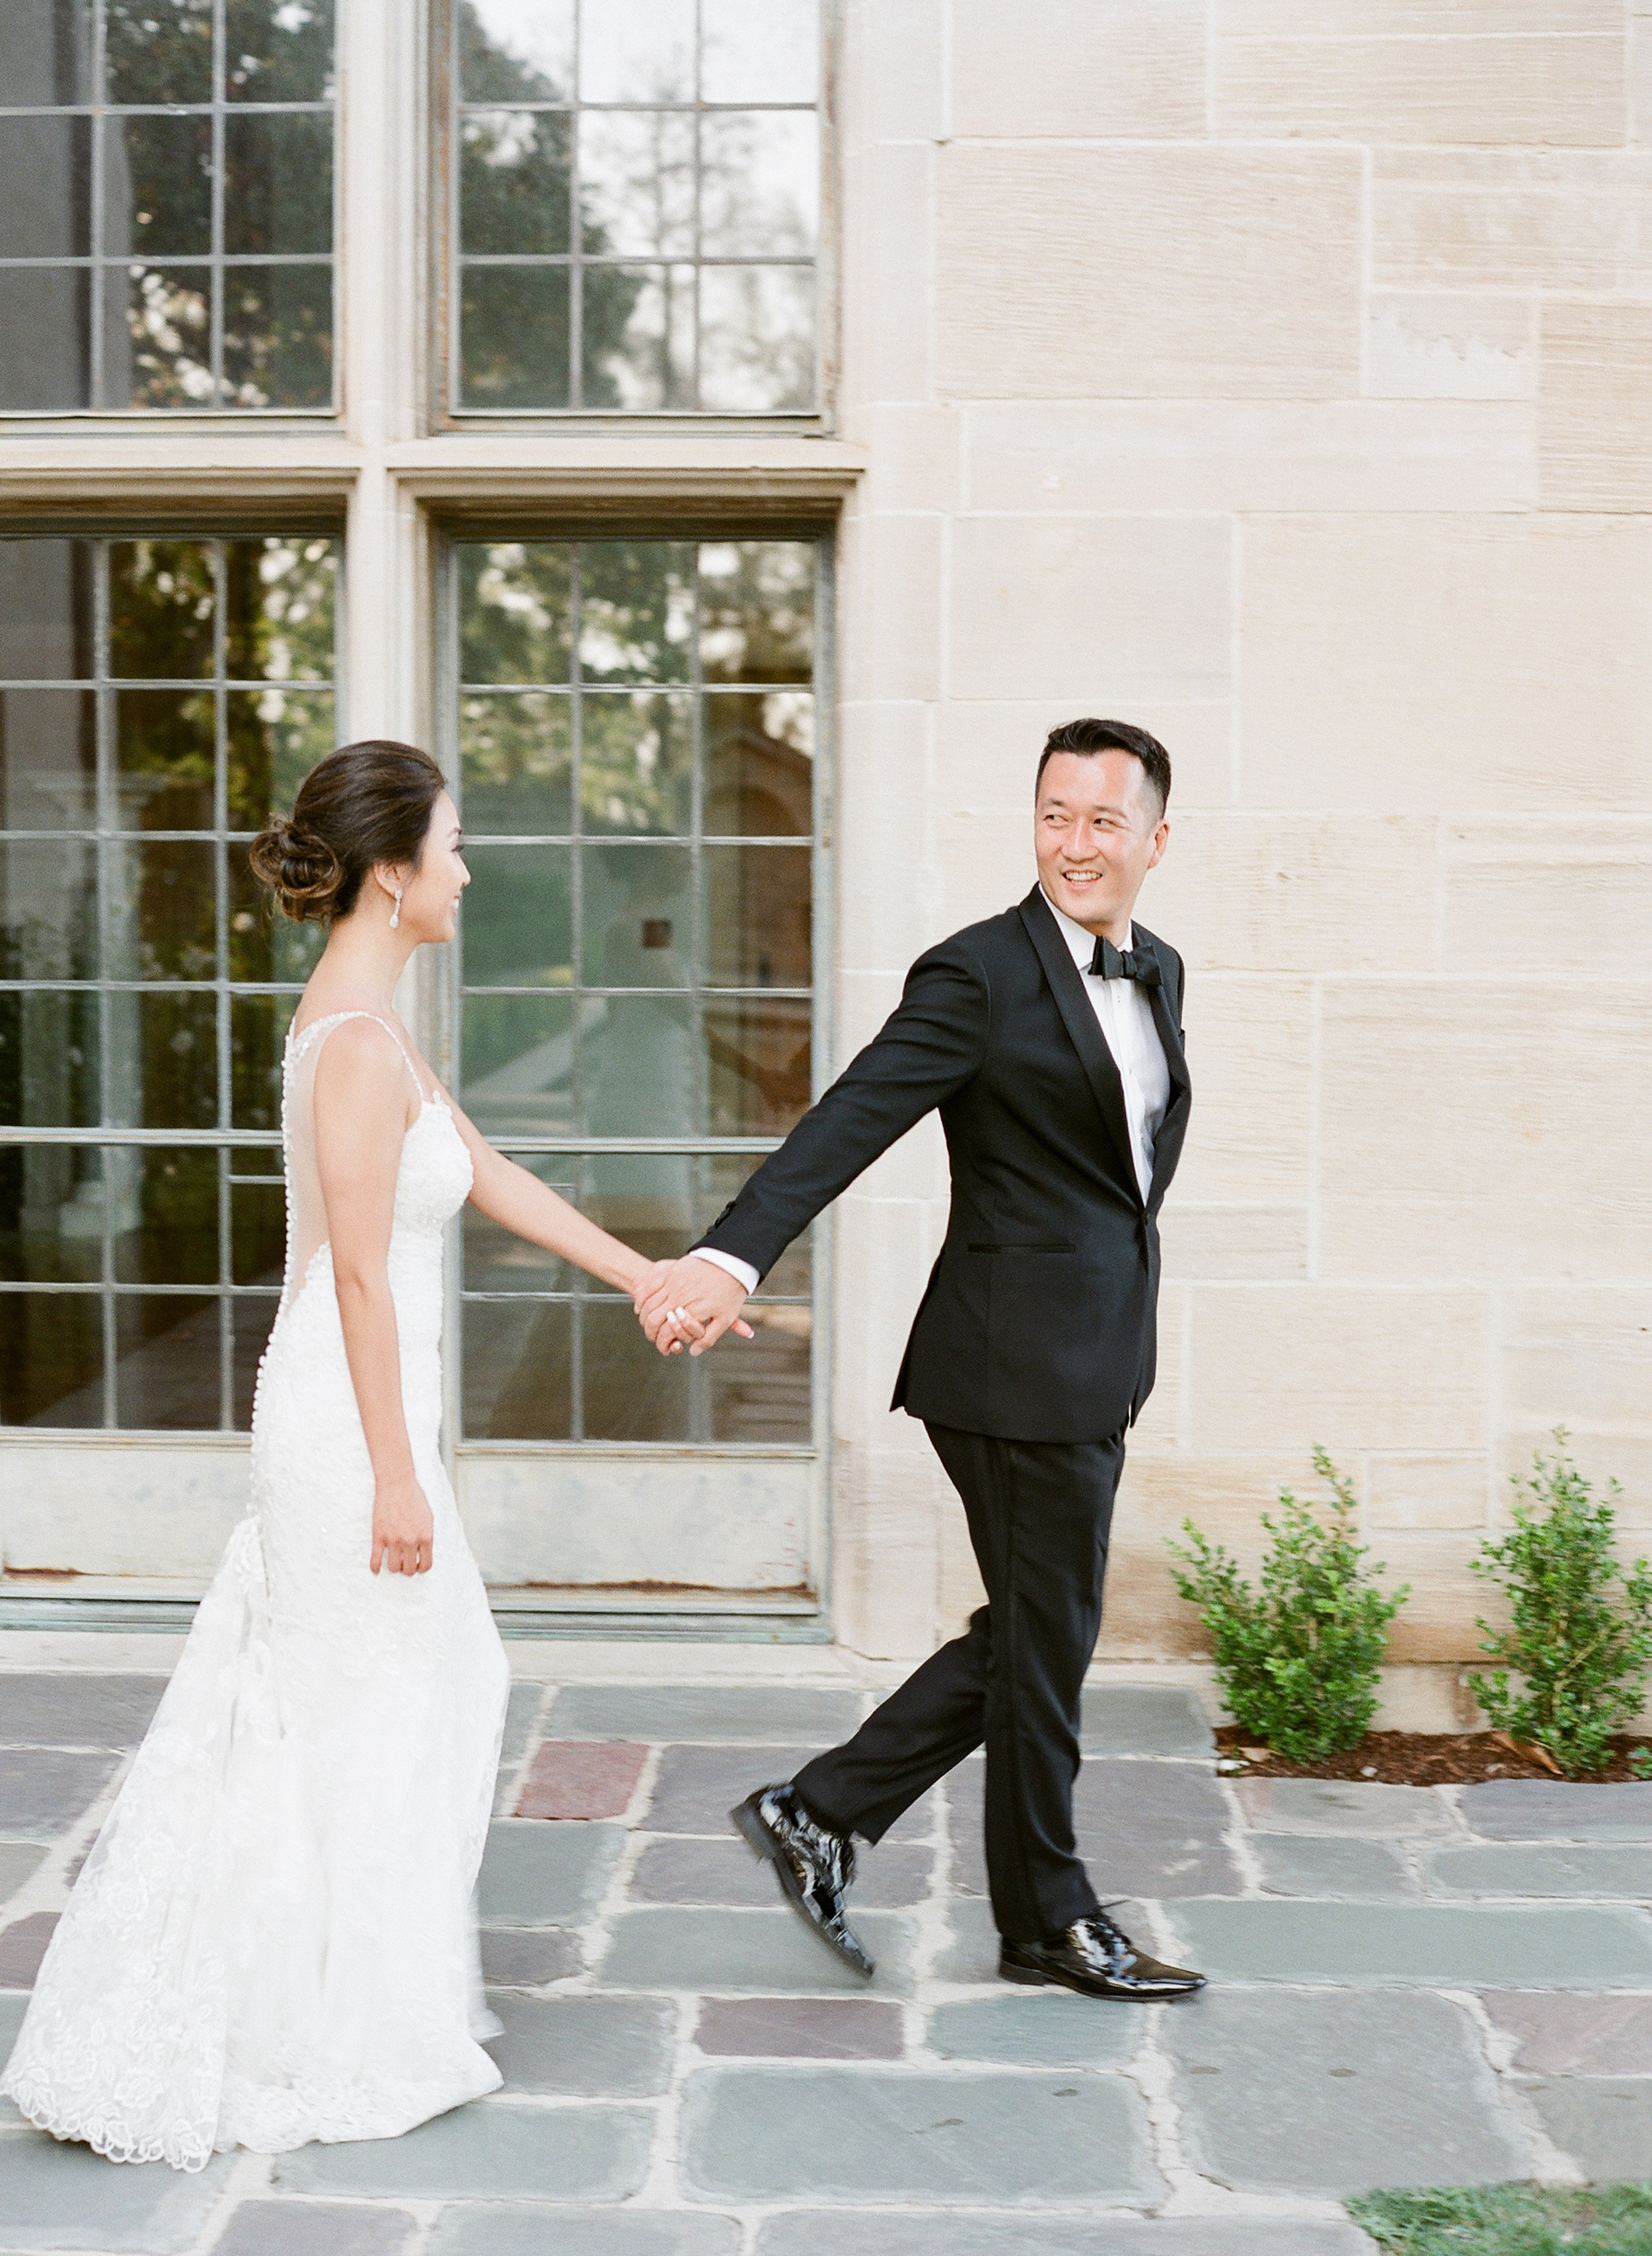 Greystone-Mansion-Wedding-Kristina-Adams-870.jpg